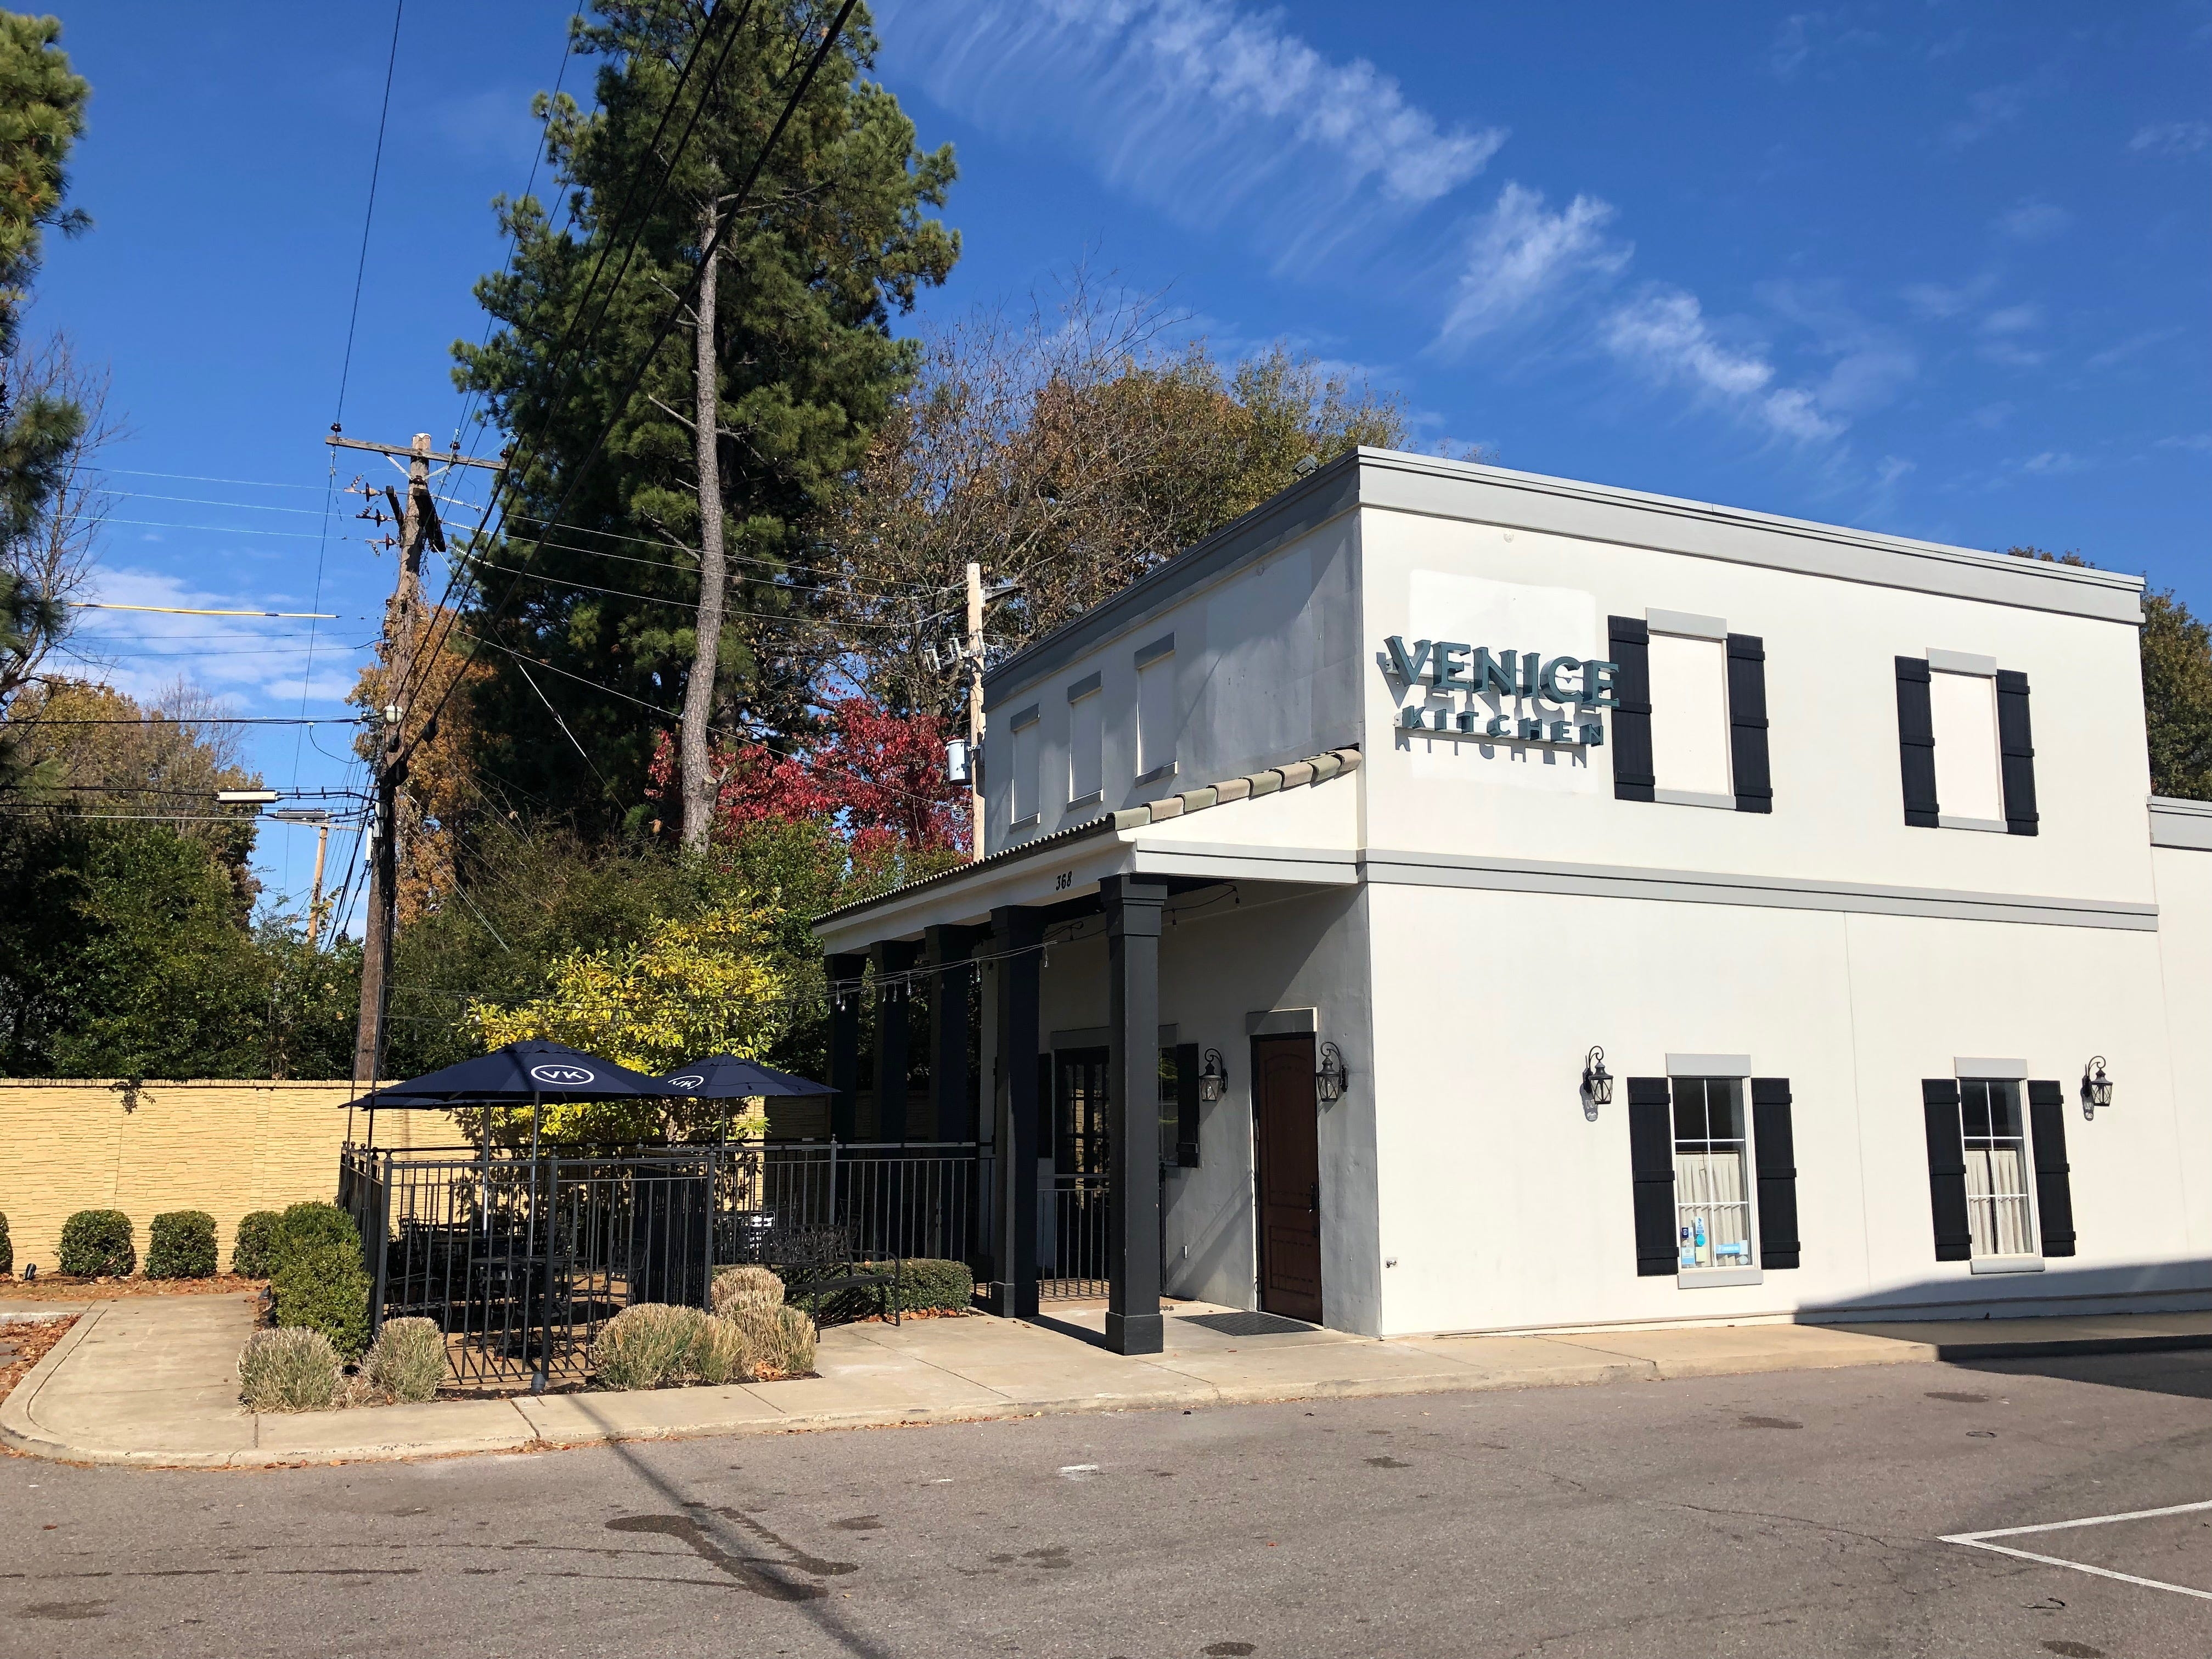 The new Venice Kitchen in East Memphis. The Old Venice Pizza Company has just undergone a re-branding and an extensive renovation, inside and out.